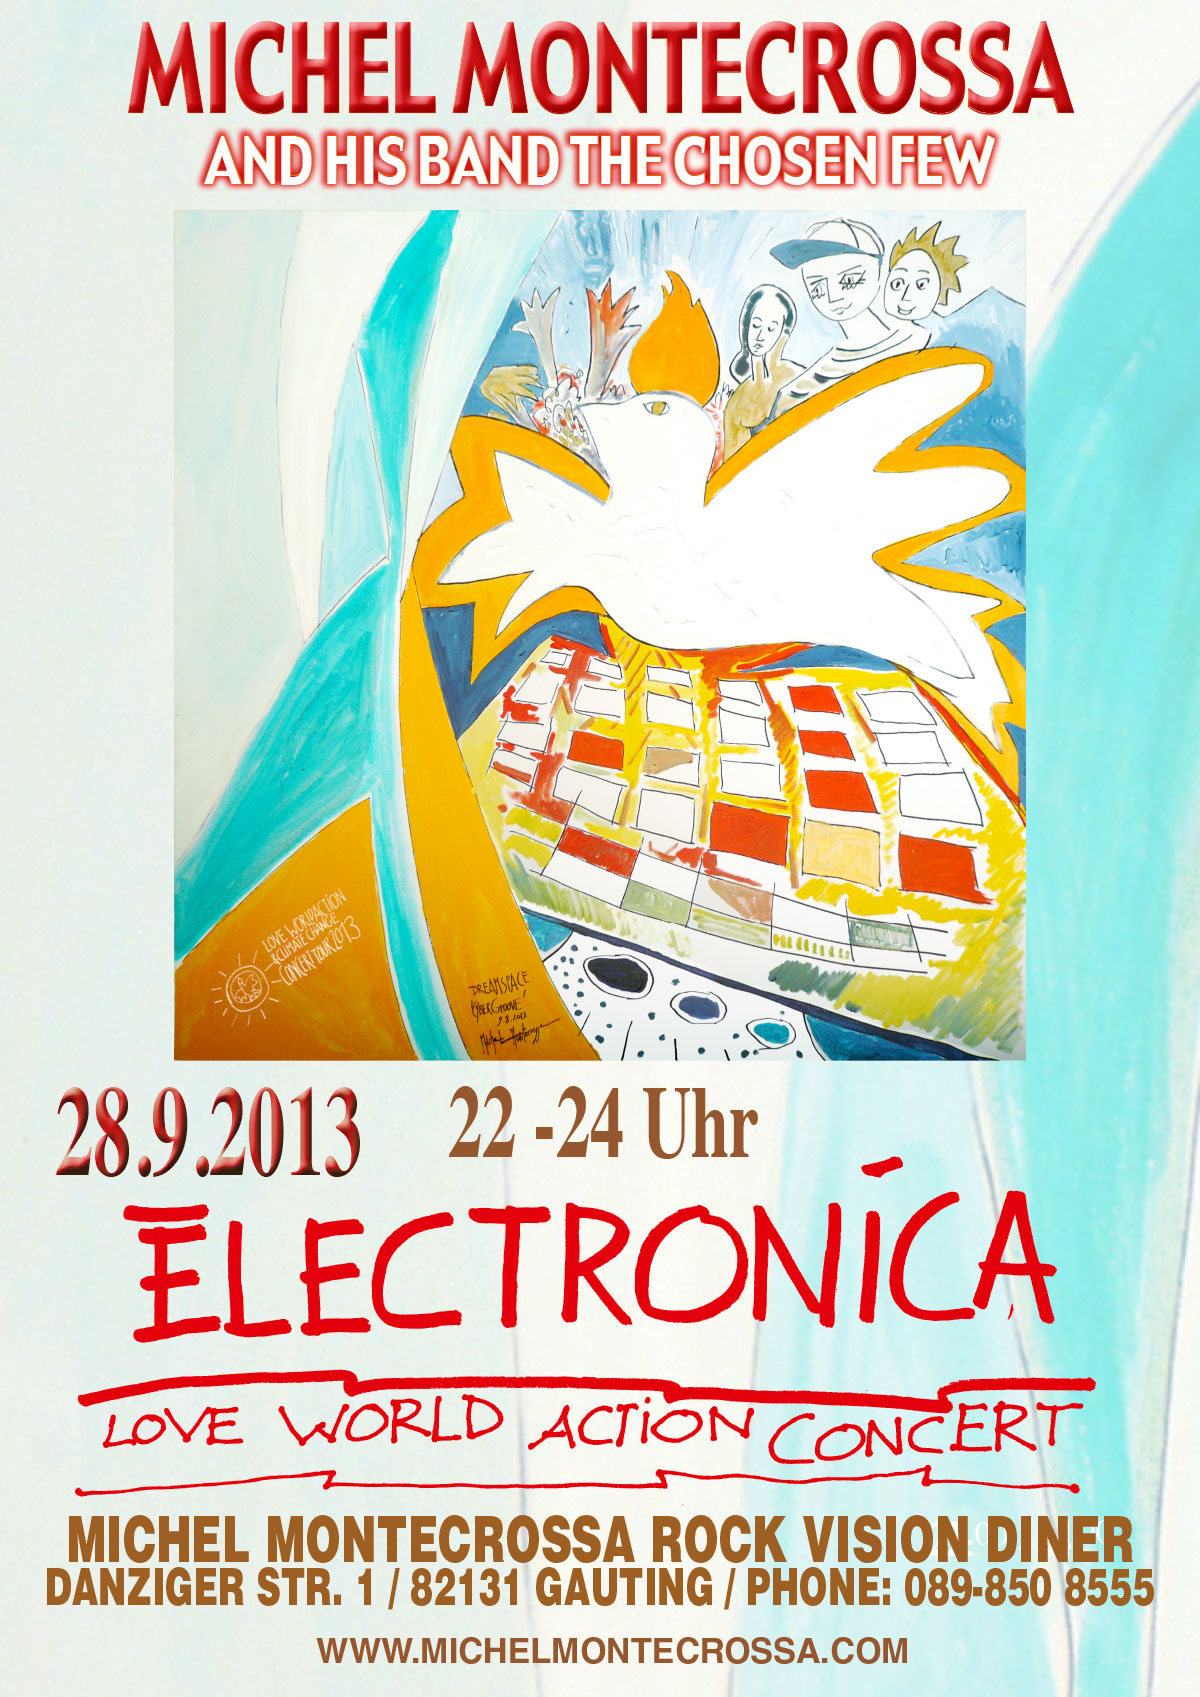 Electronica Love World Action Concert